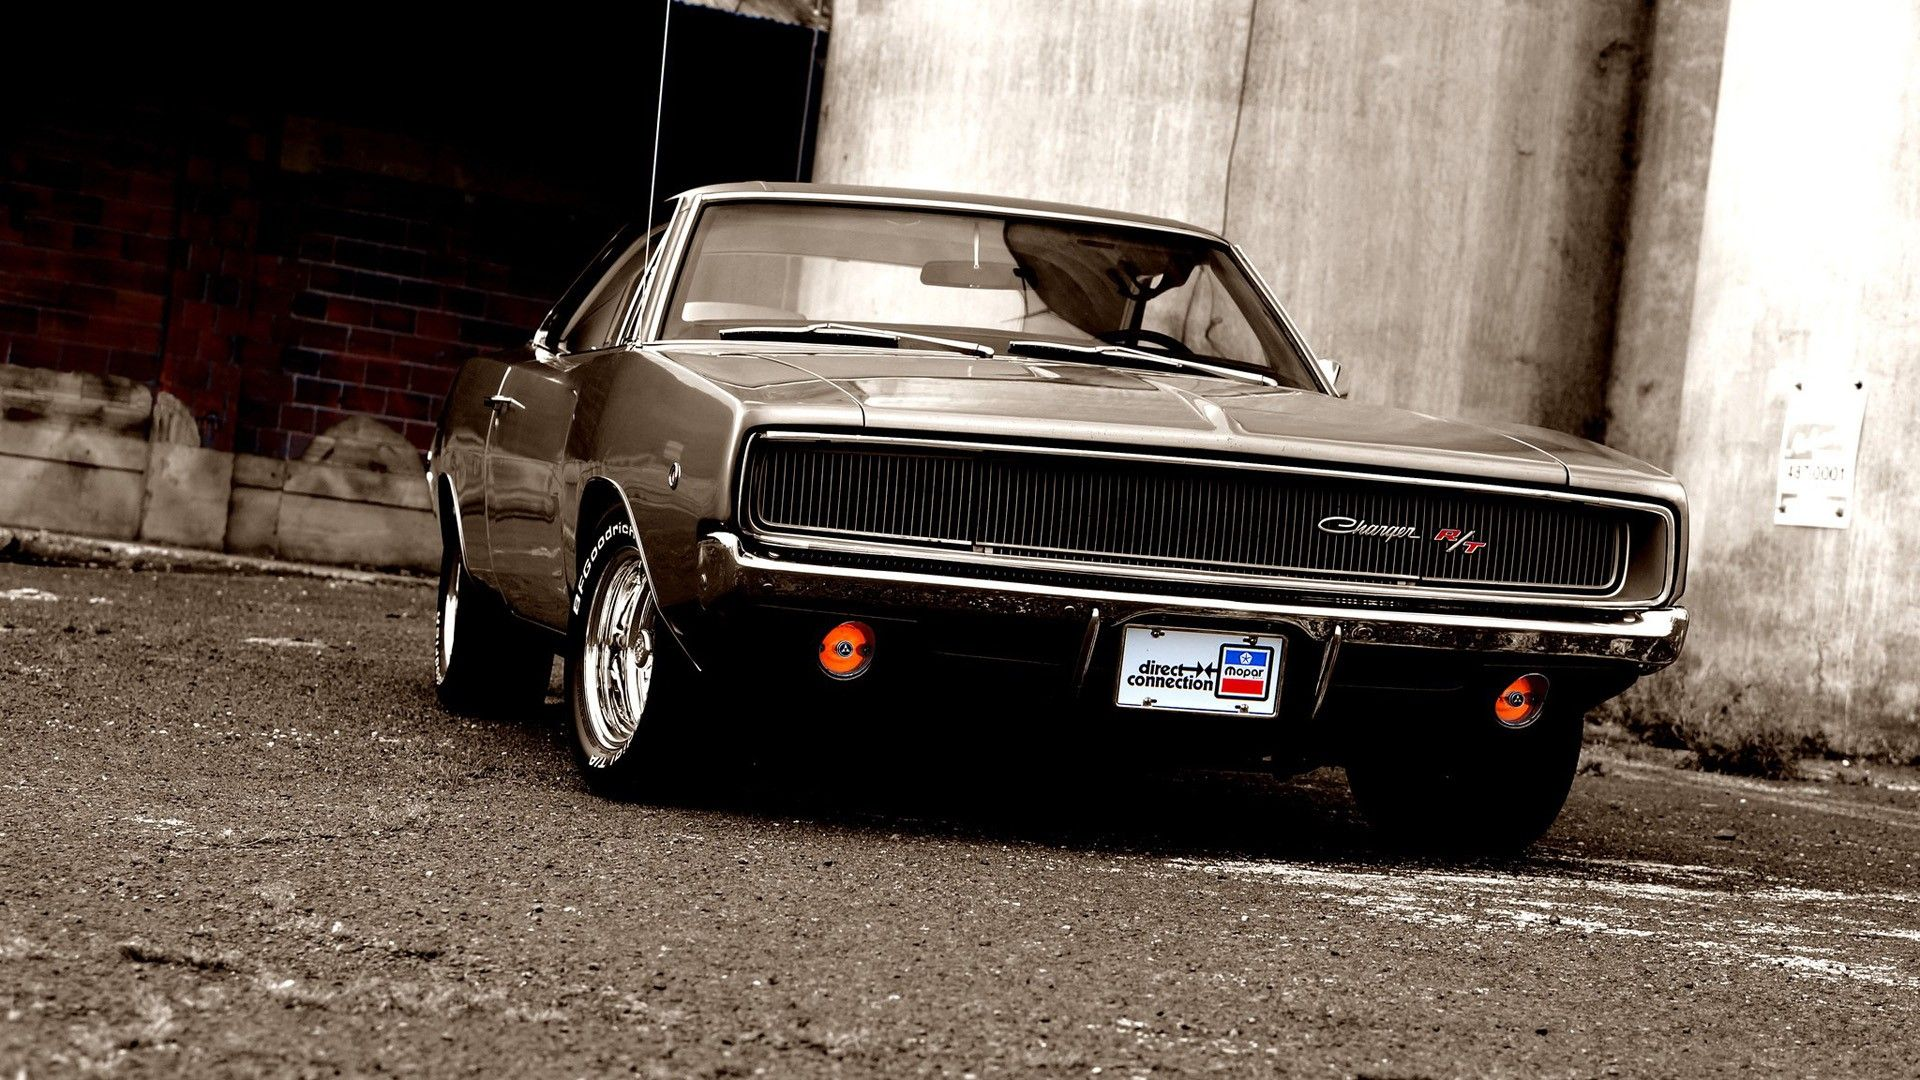 Dodge Charger Hd Wallpapers Backgrounds Wallpaper 1680 1050 Dodge